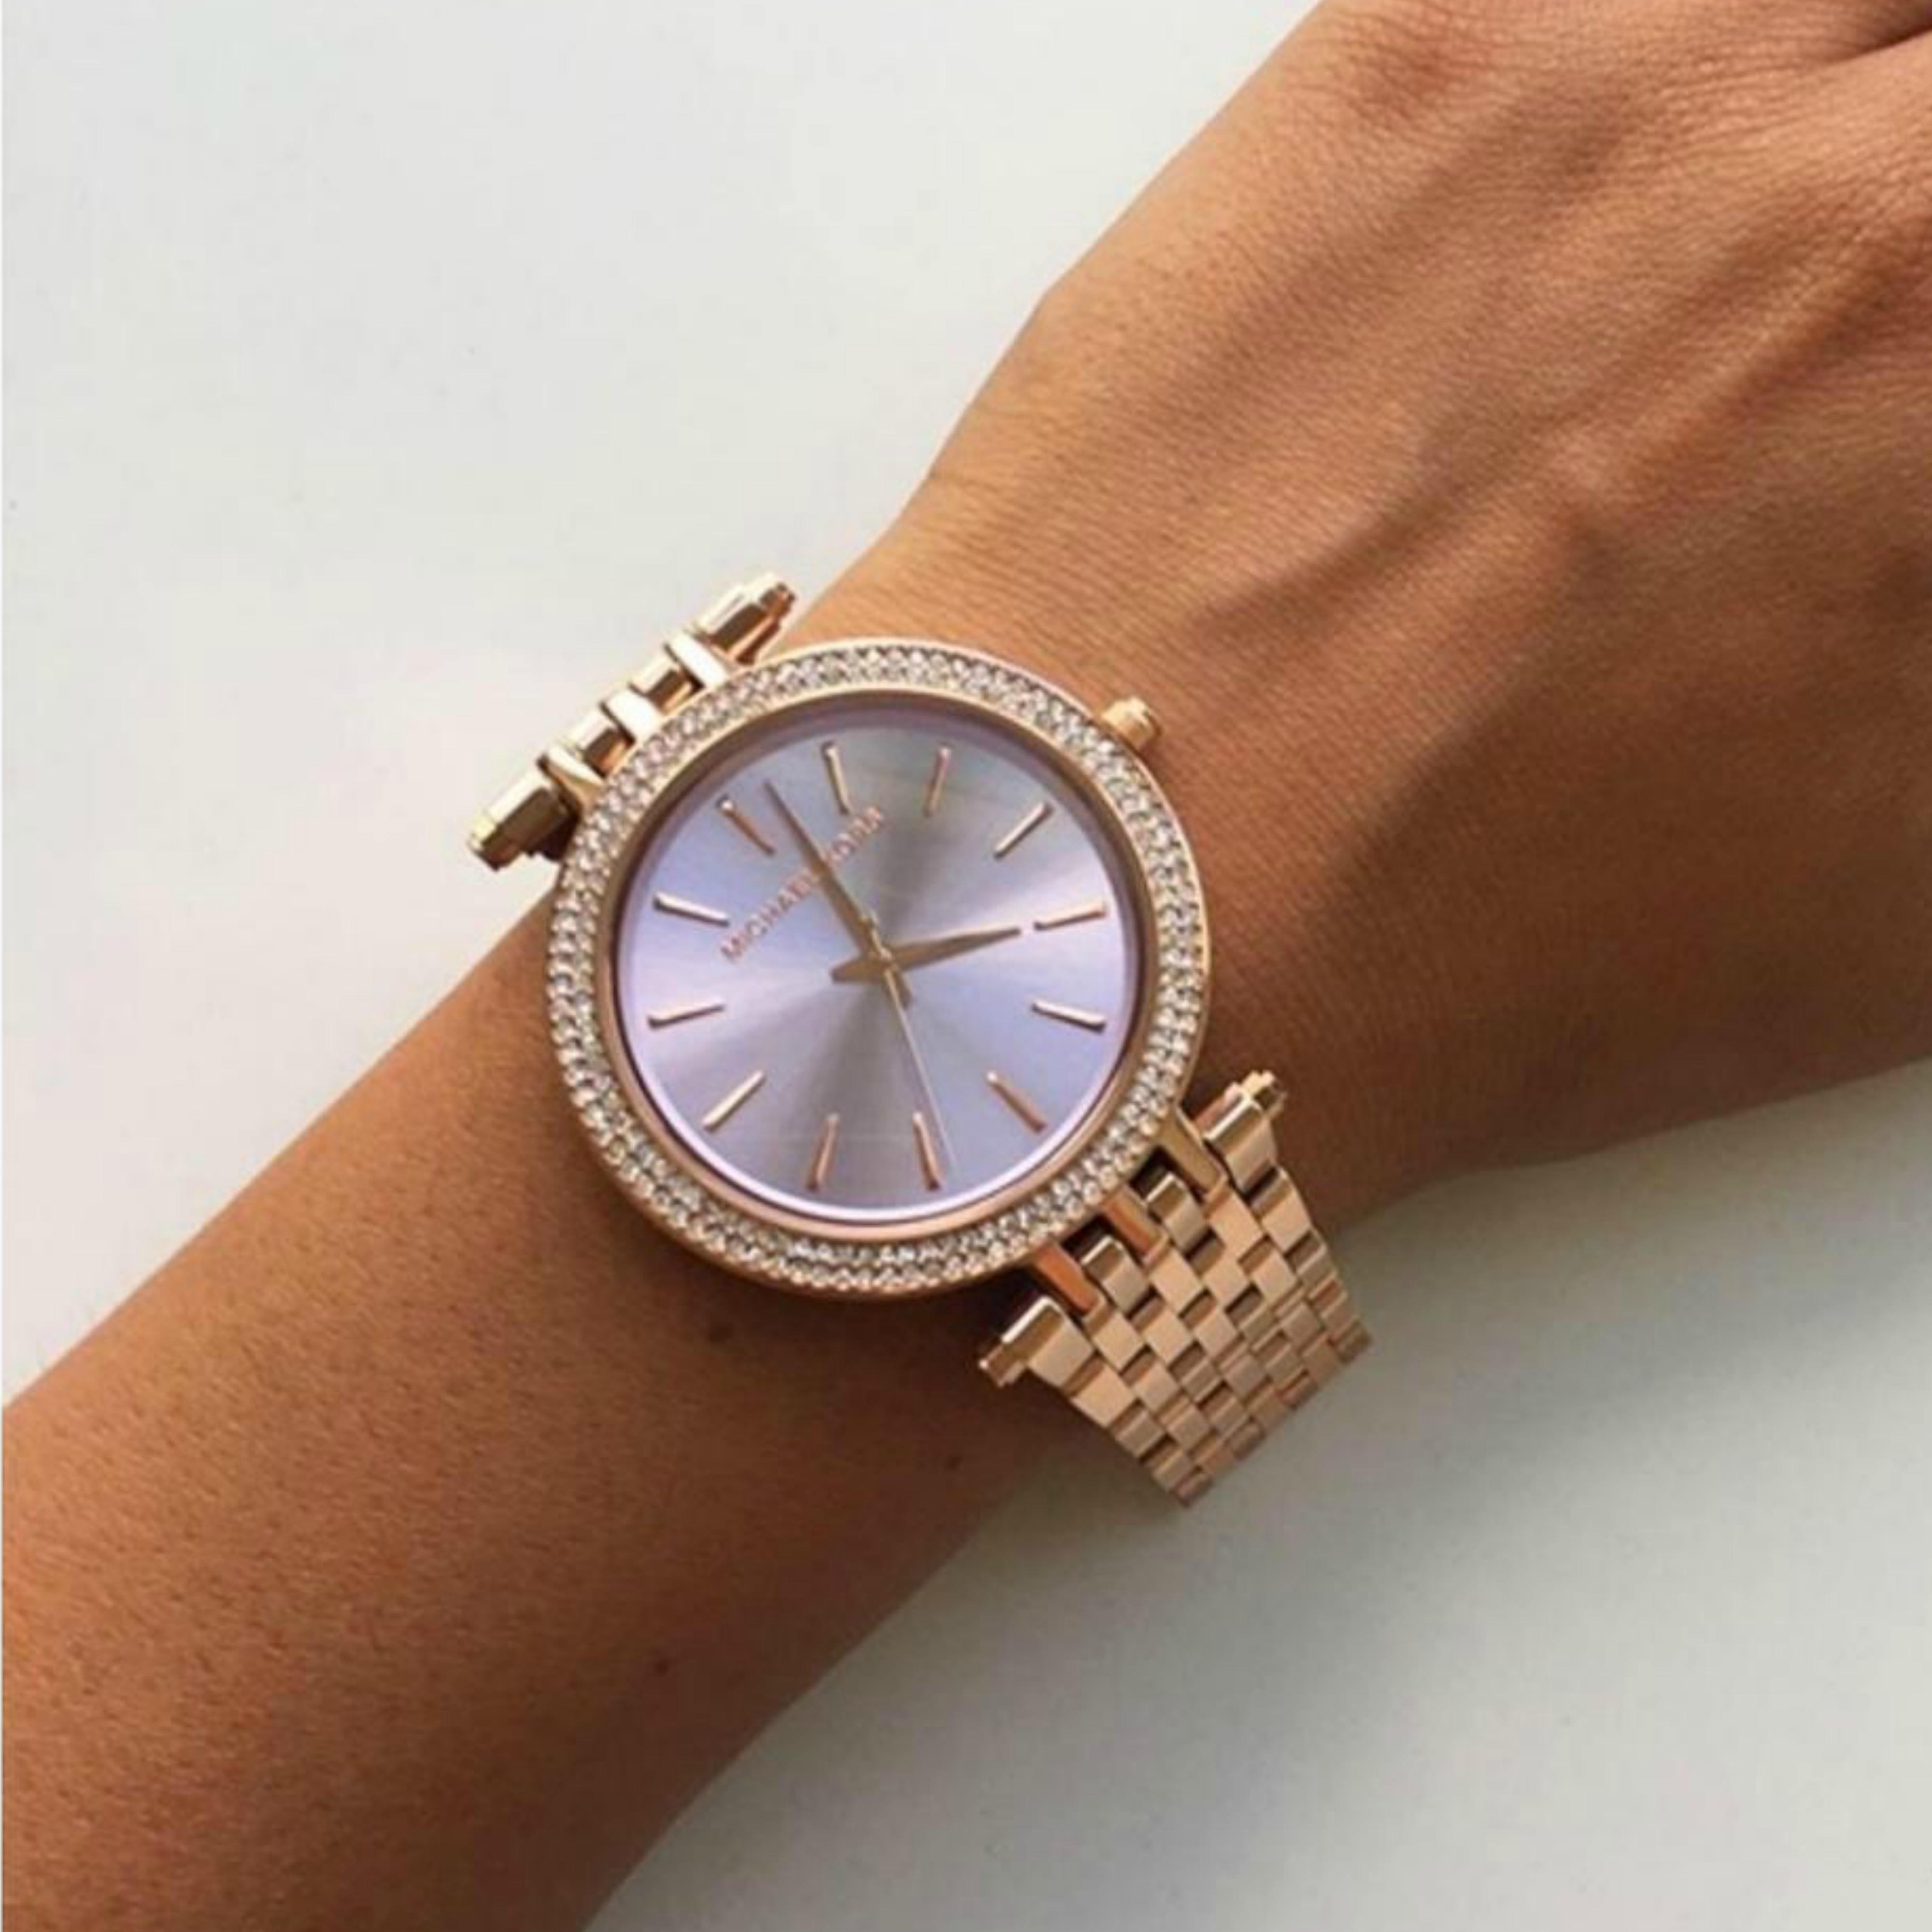 9c5fac5811ea9 Michael Kors Darci Ladies Watch